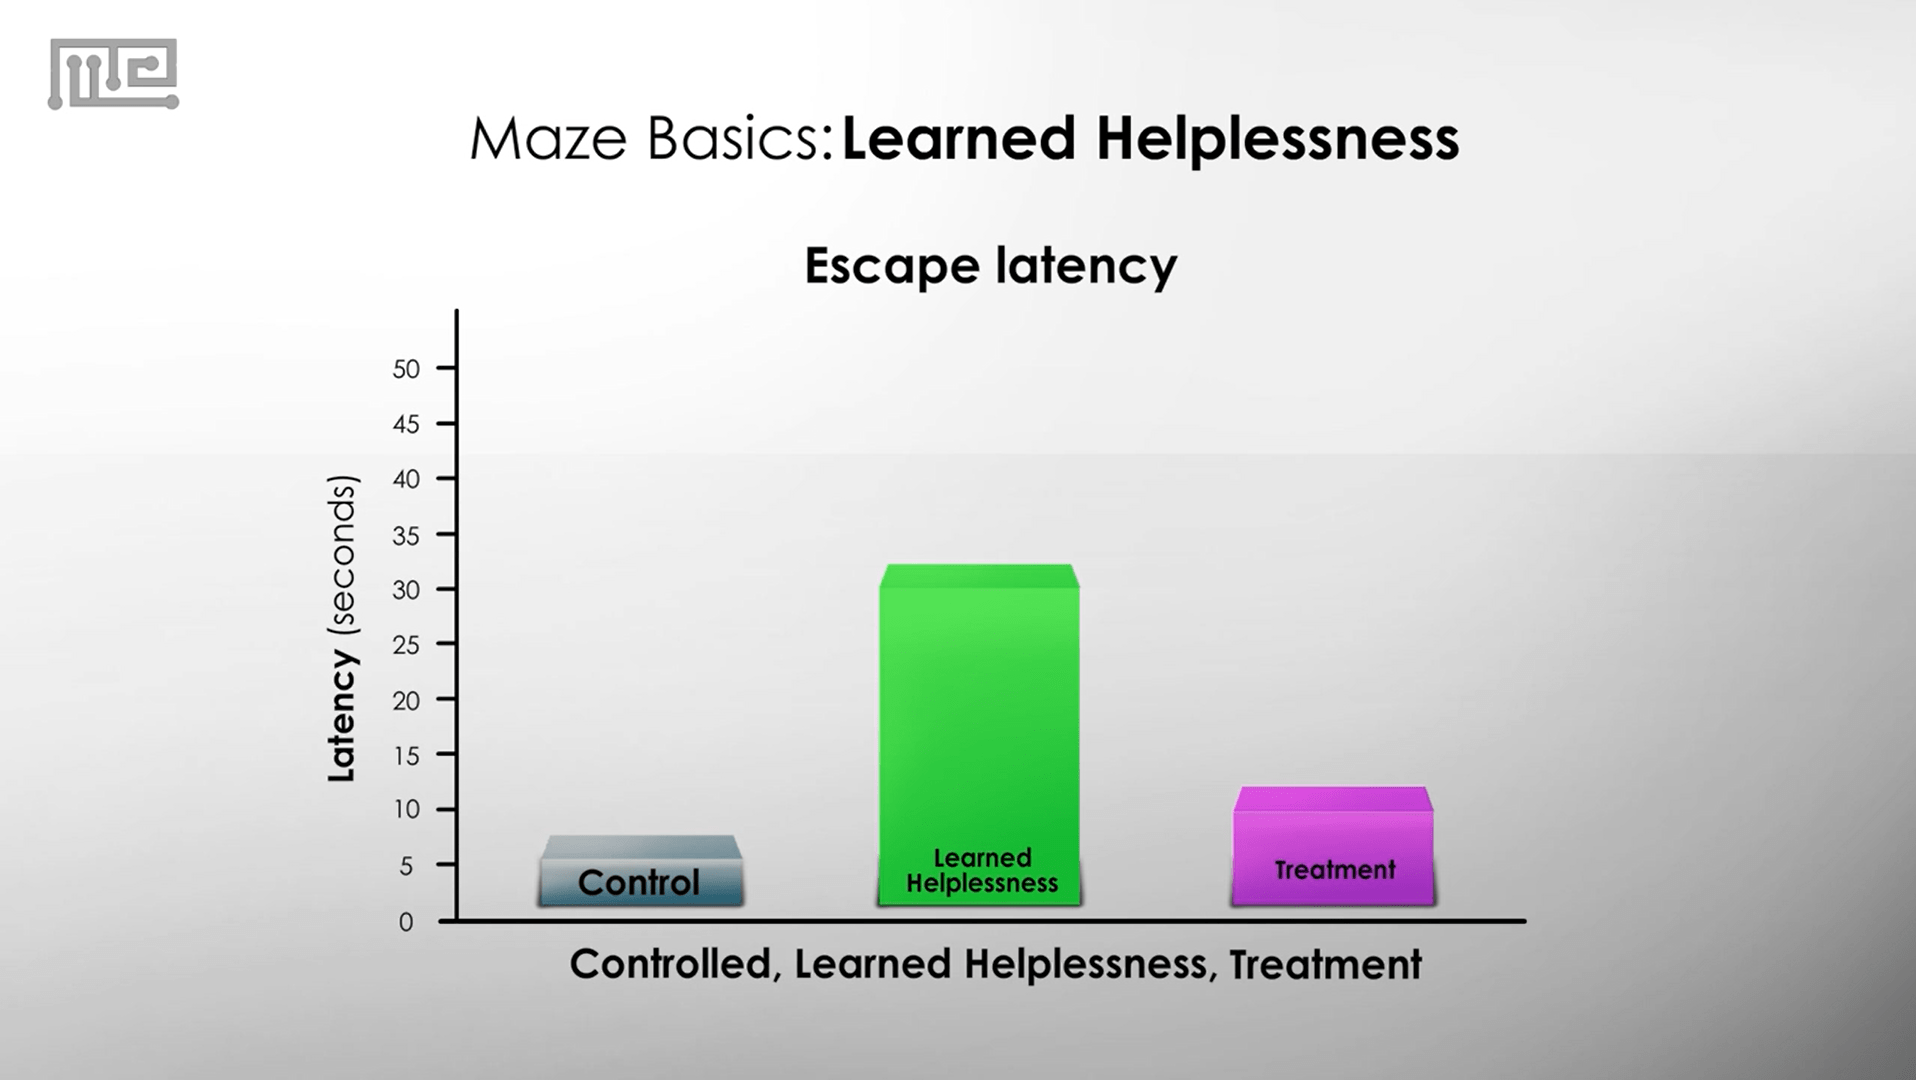 Learned Helplessness treatment and escape latency